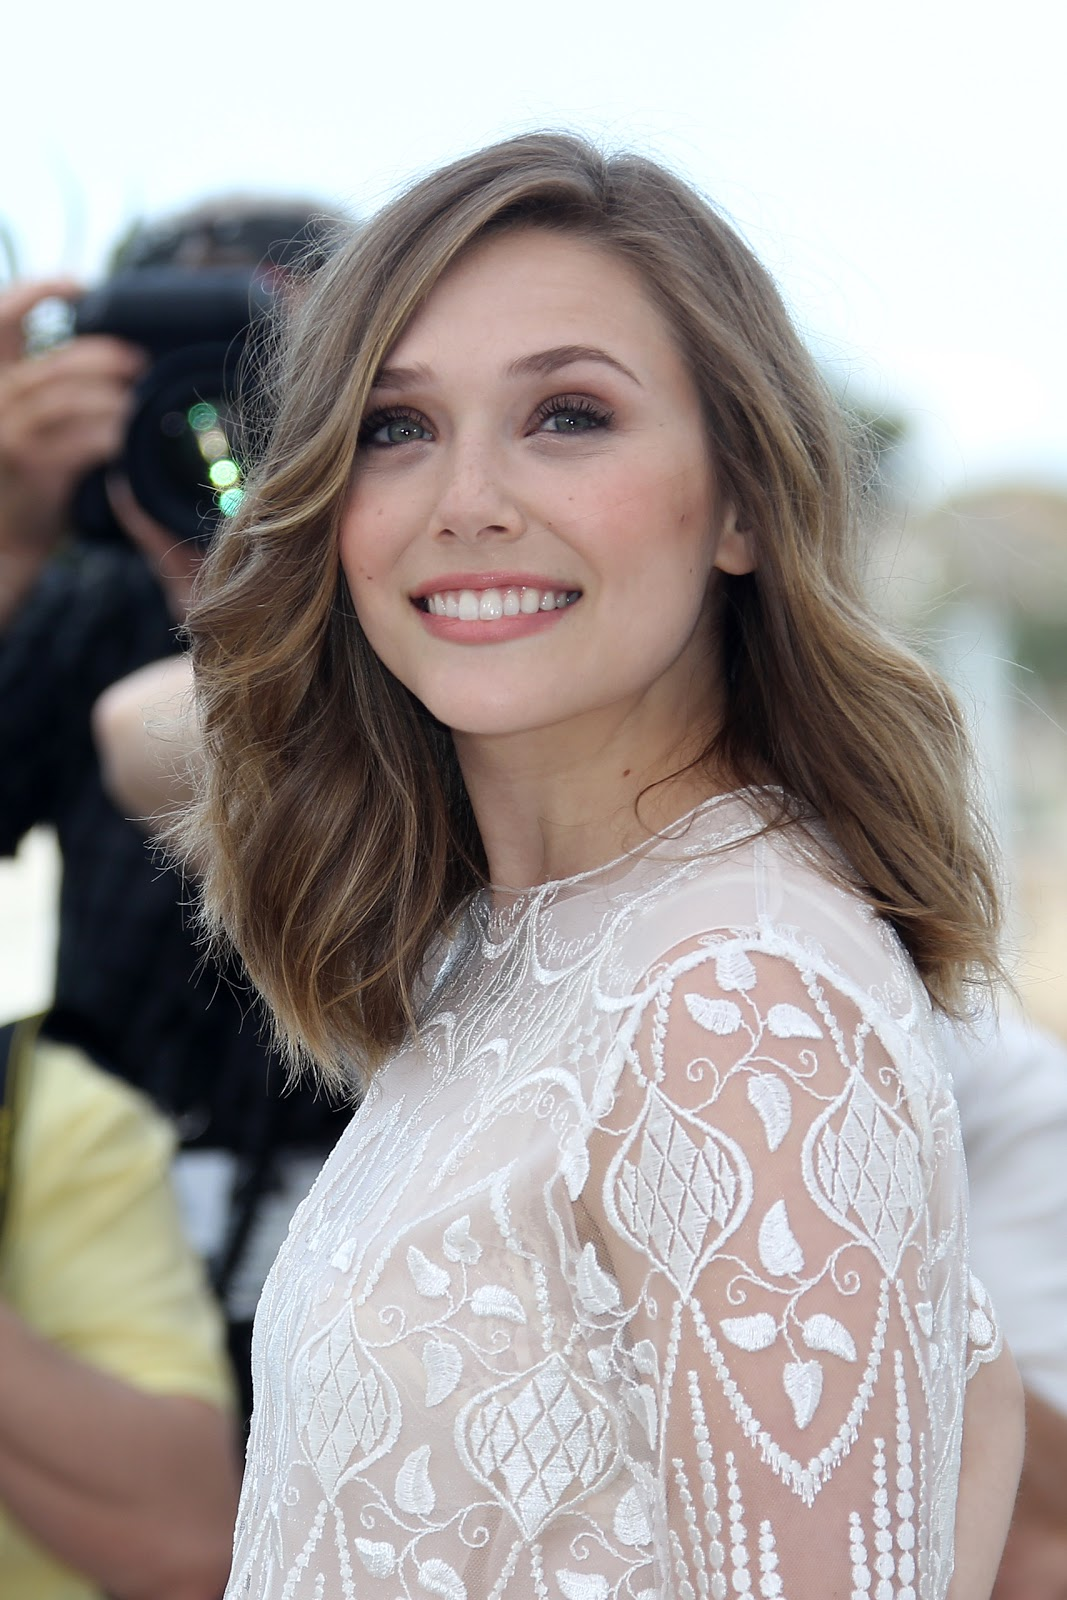 Captain America Civil War Actress Elizabeth Olsen At Cannes Film Festival